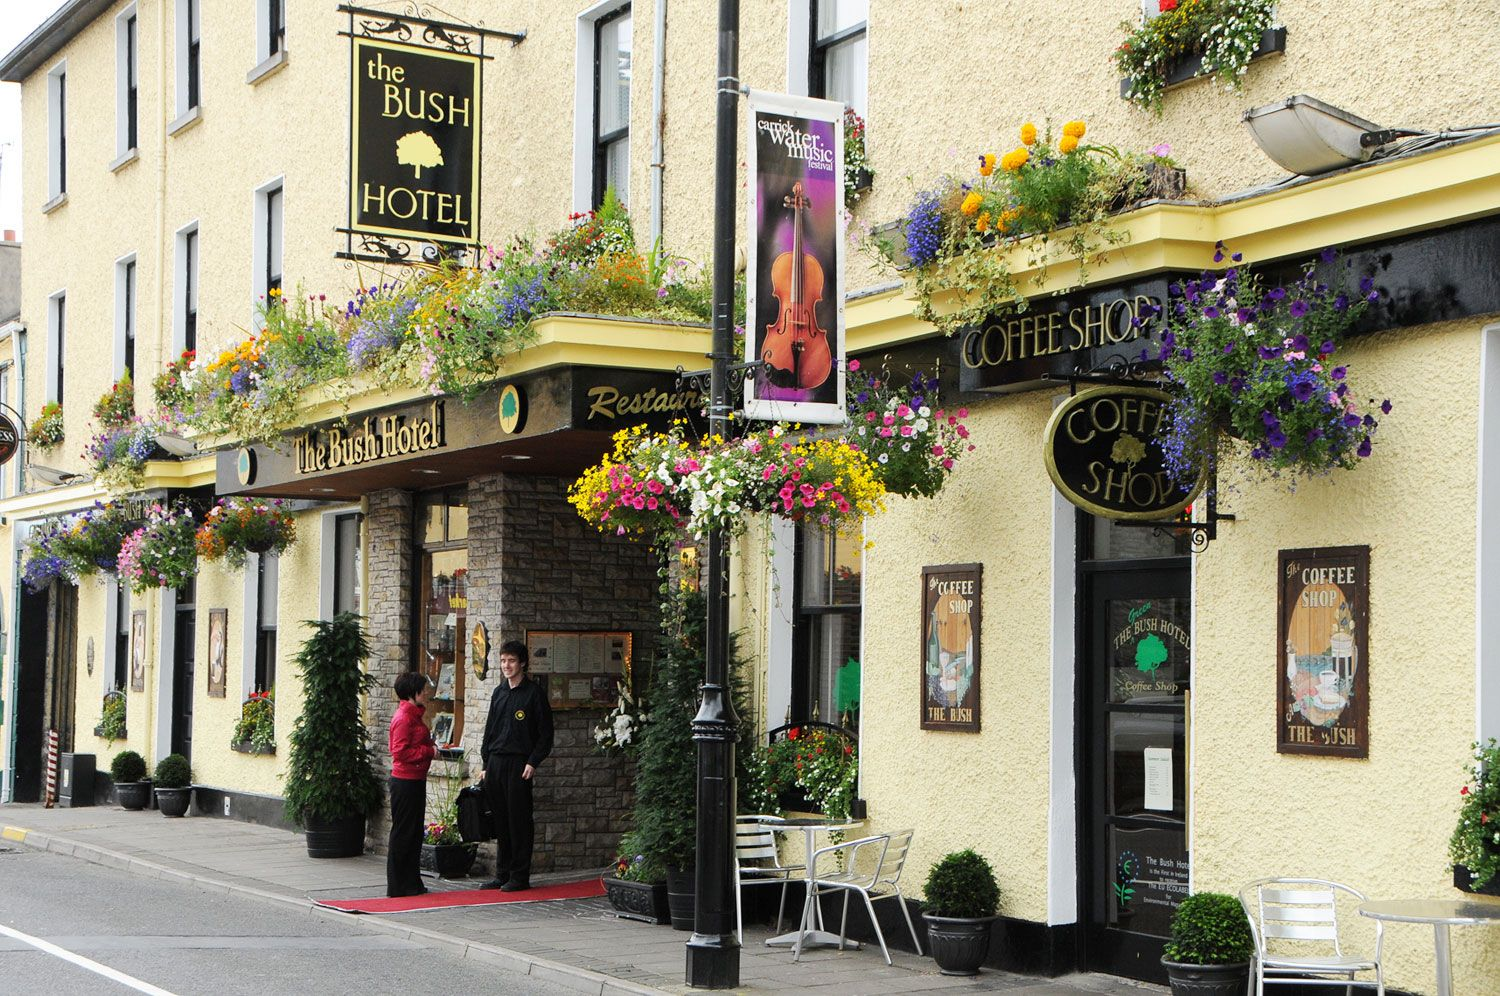 The Front of the Bush Hotel Carrick on Shannon